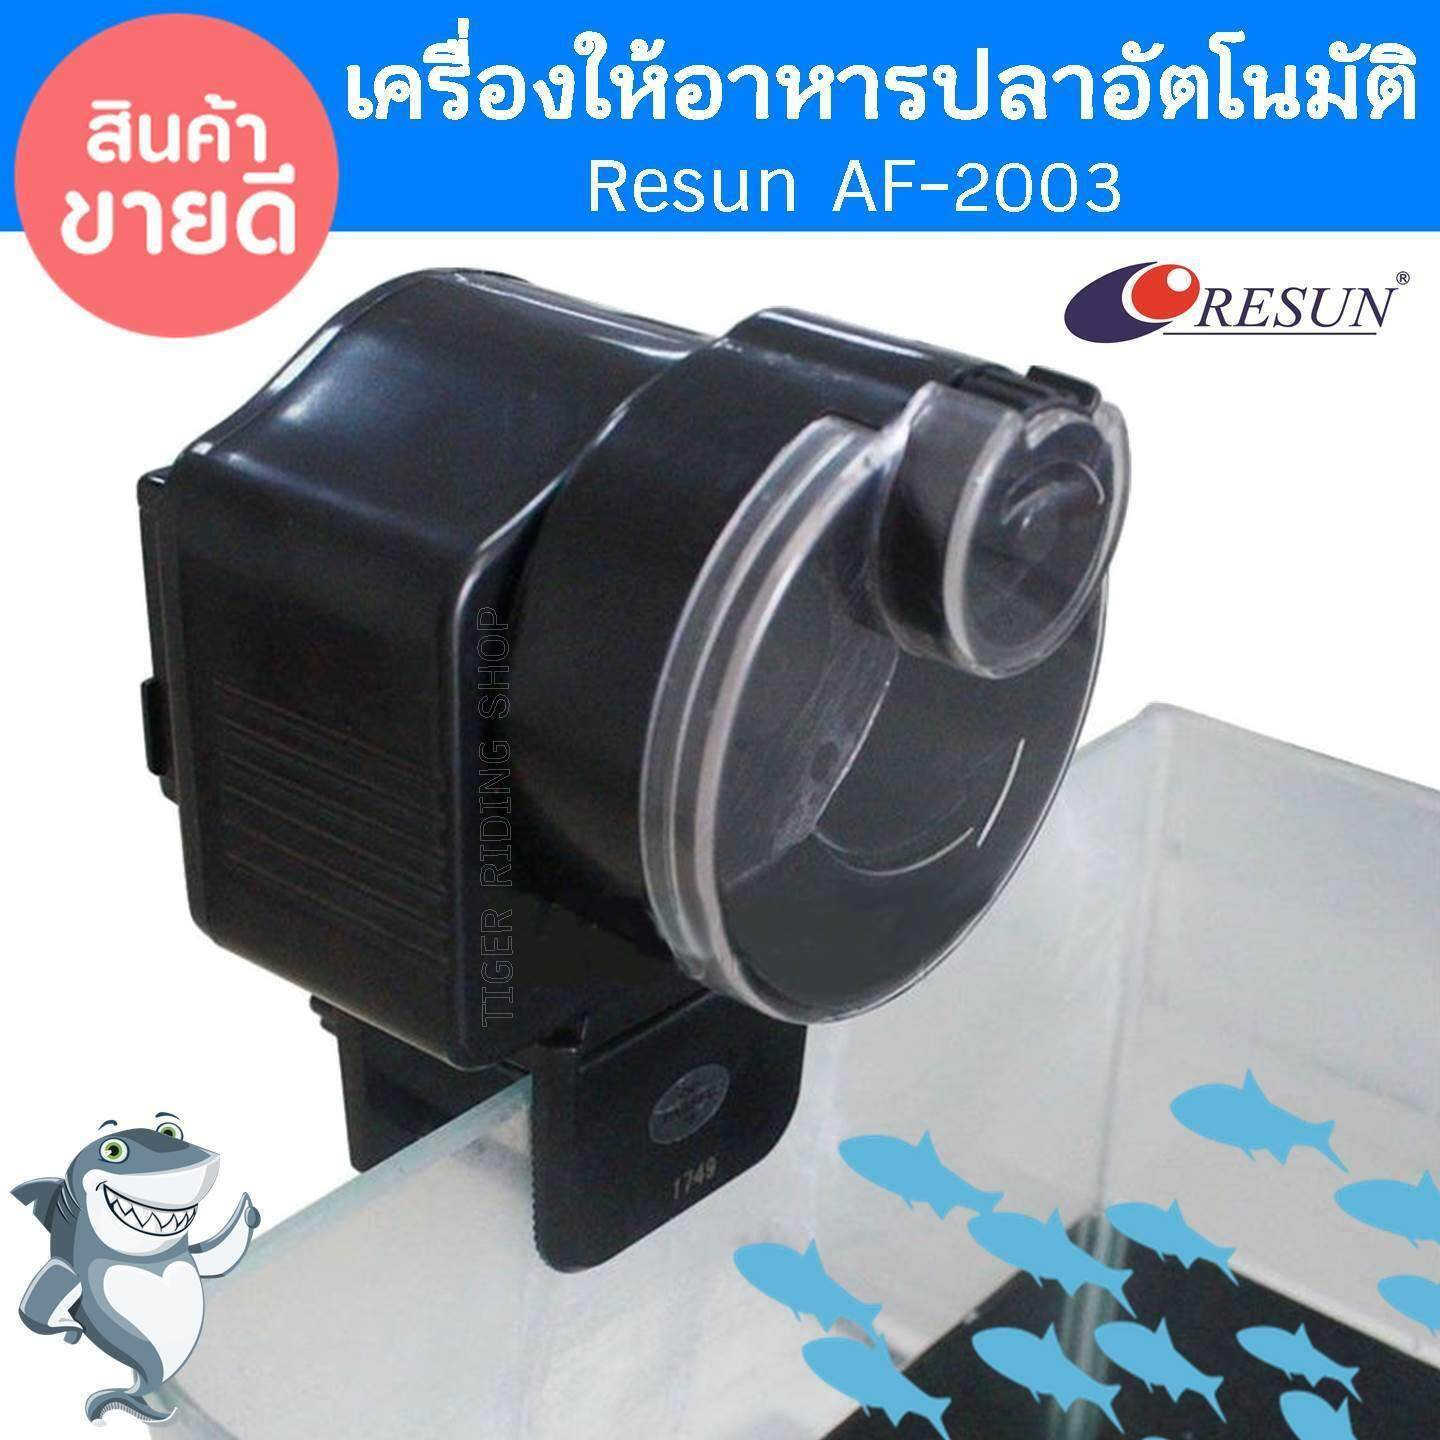 Sell Air Pump Resun Cheapest Best Quality Th Store Af 2003 Auto Feeder Thb 341